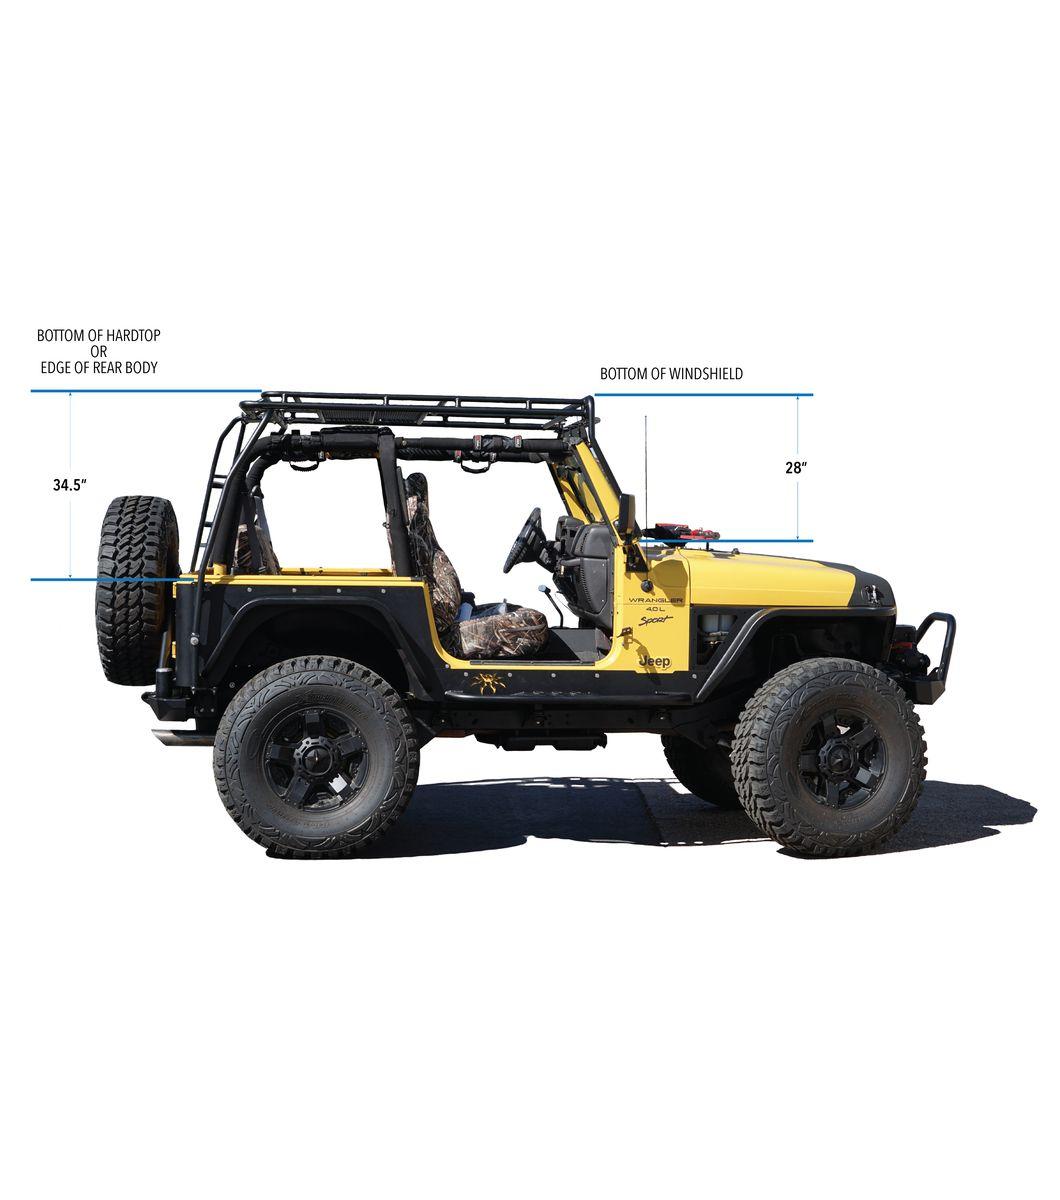 Gobi Jeep Tj Stealth Rack Lightbar Setup With Sunroof Jeep Tj